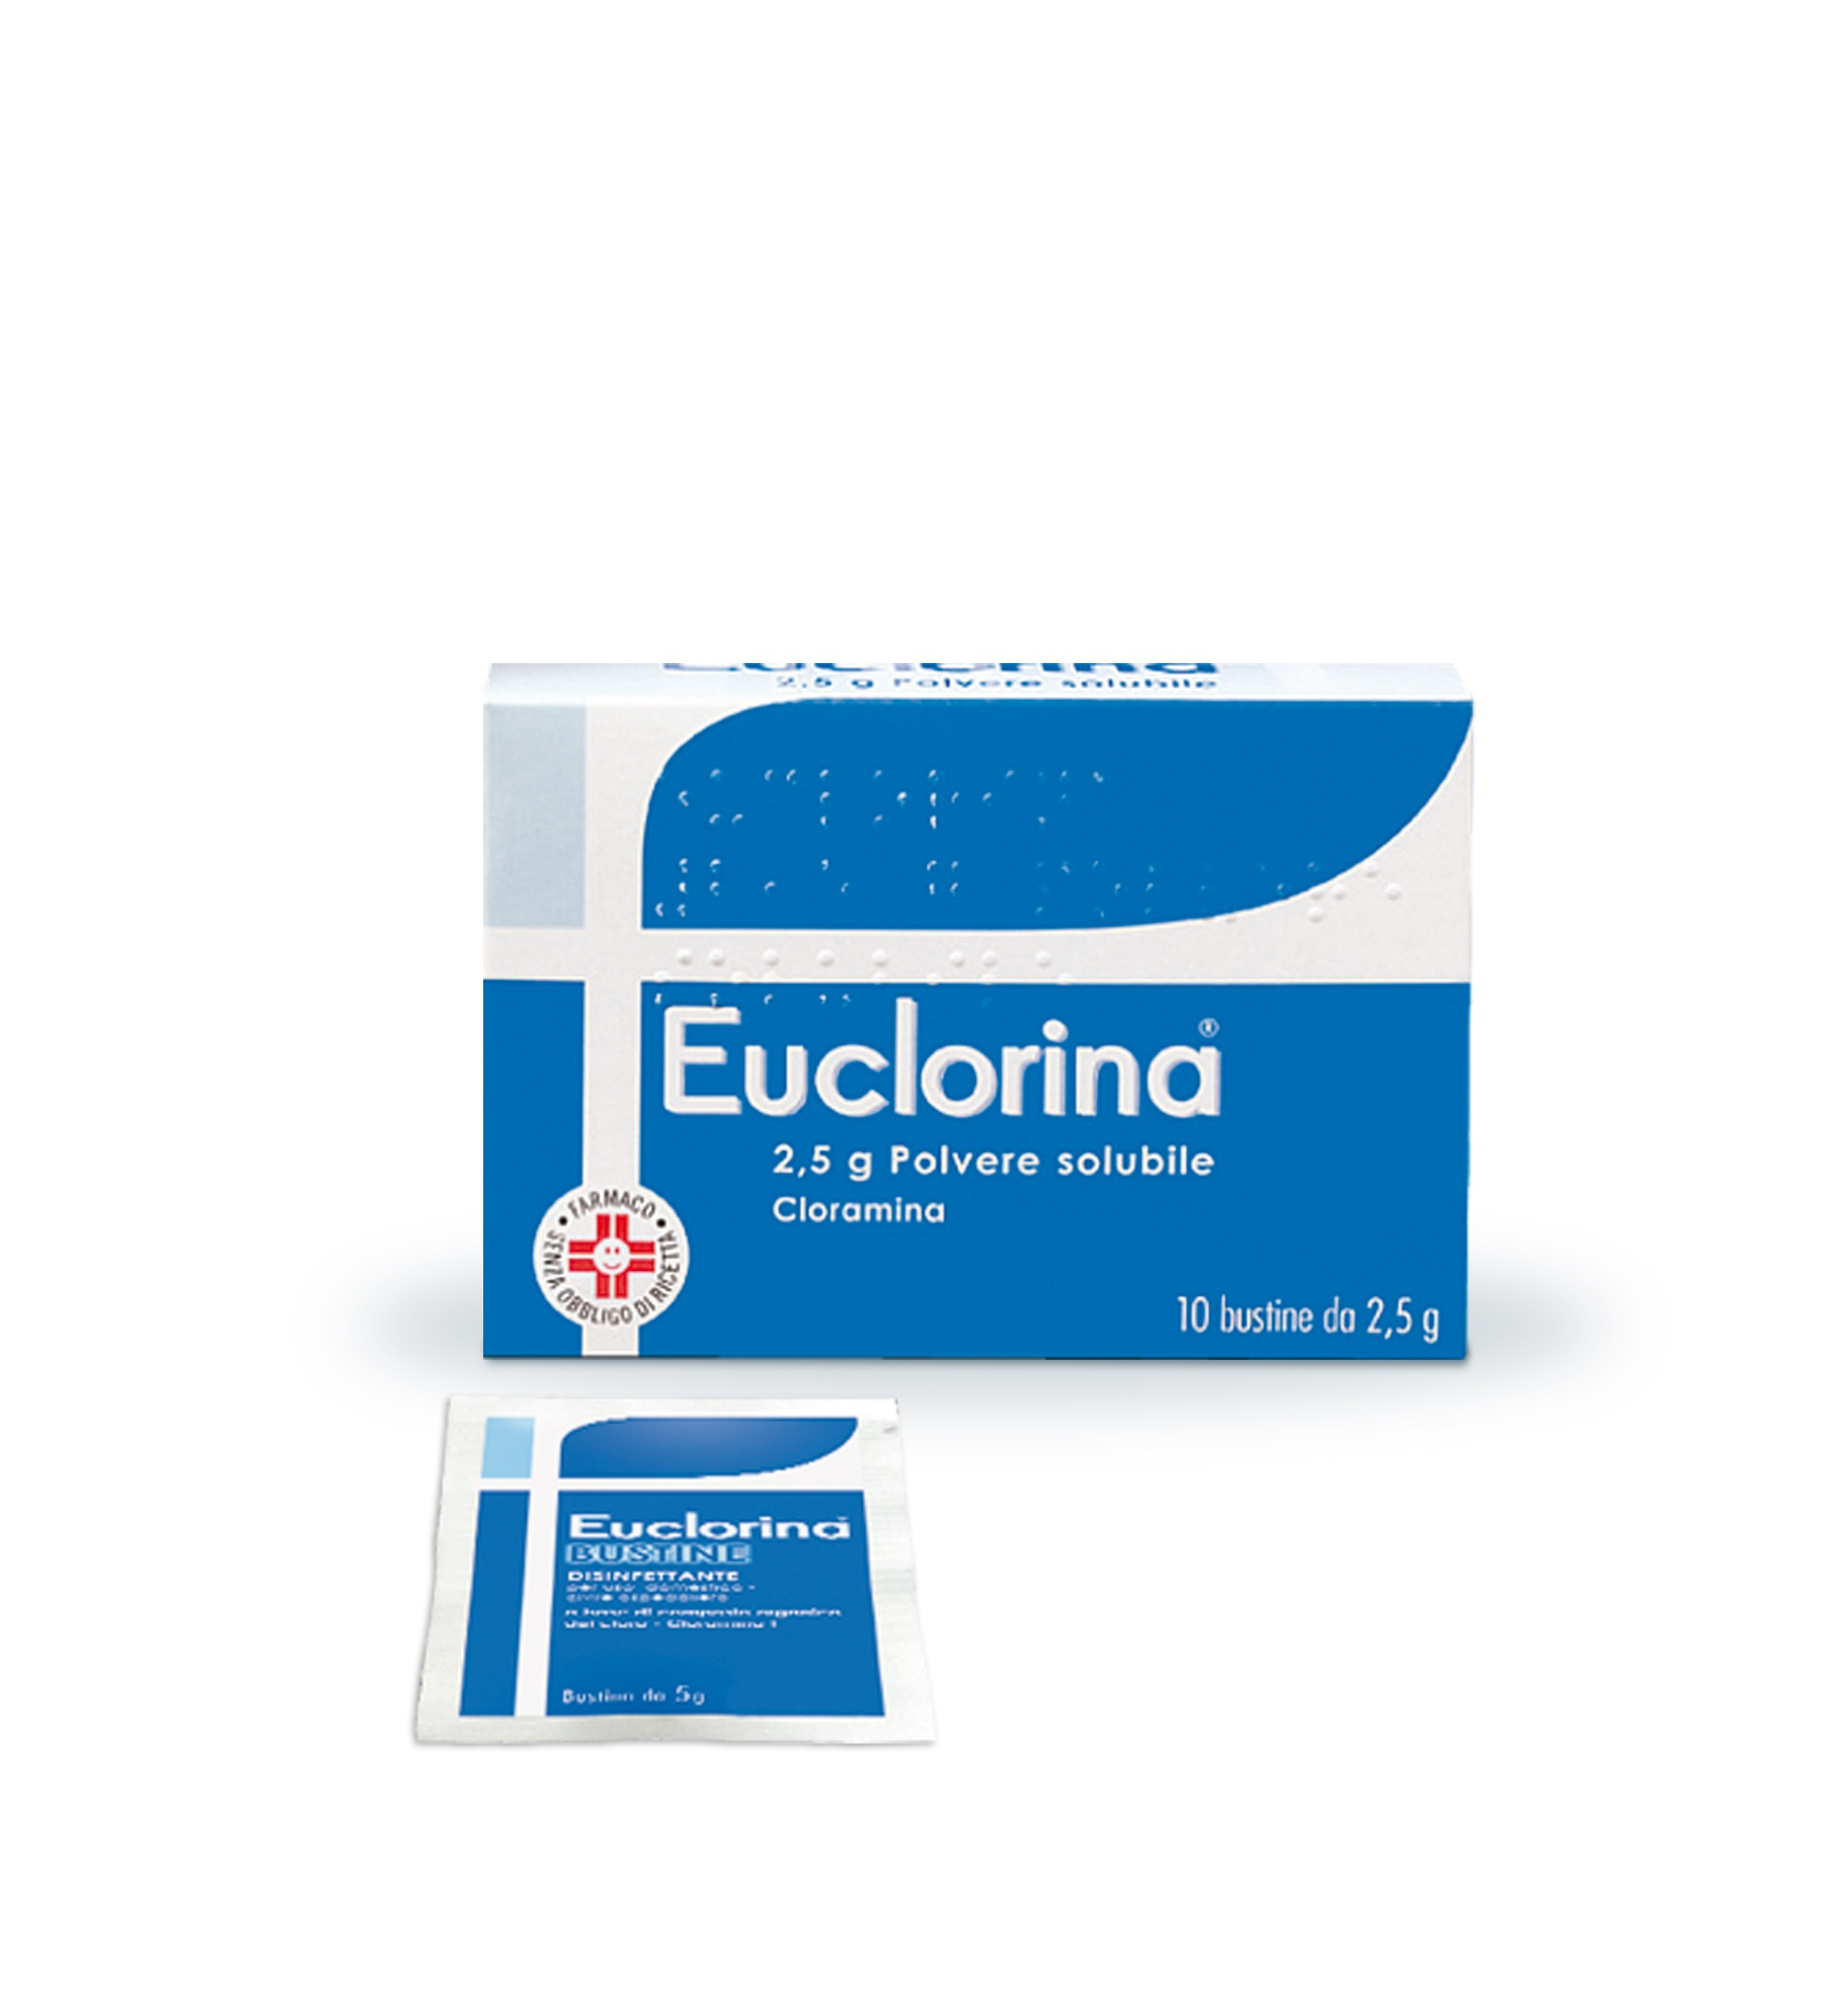 EUCLORINA*POLV SOL 10BUST 2,5G - Farmastar.it